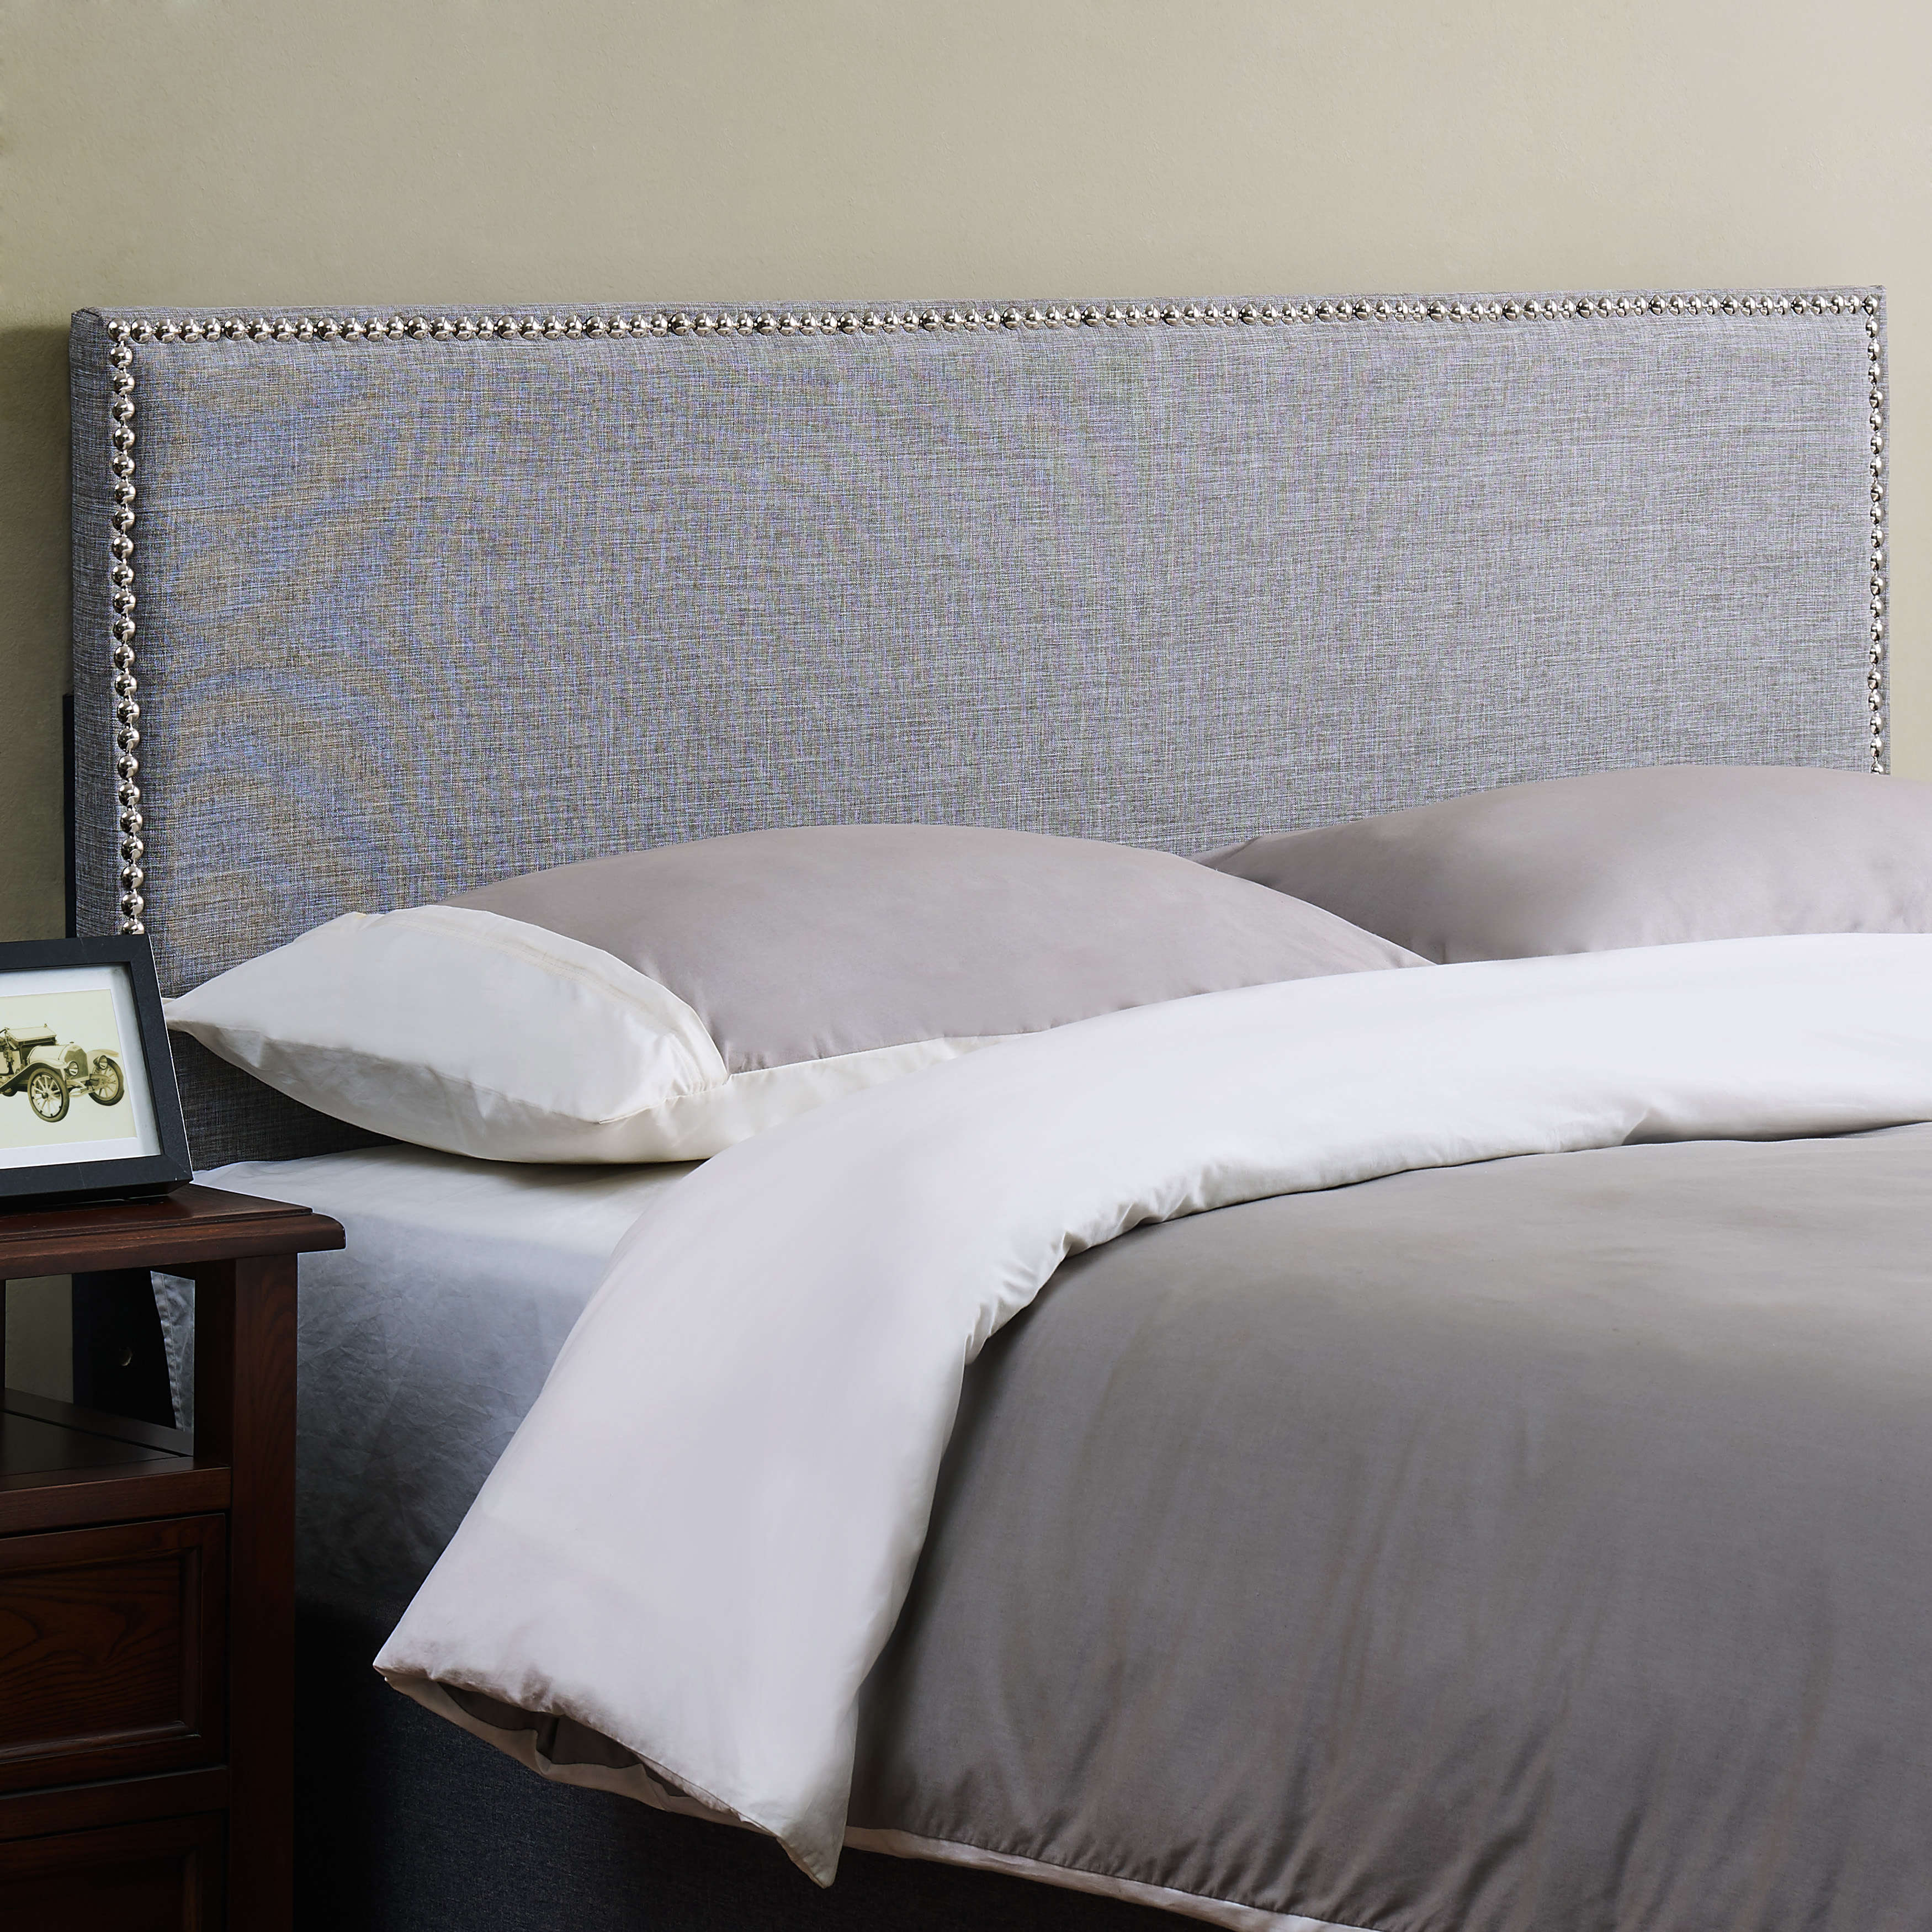 Mainstays Headboard with Nail Heads, Multiple Sizes and Colors